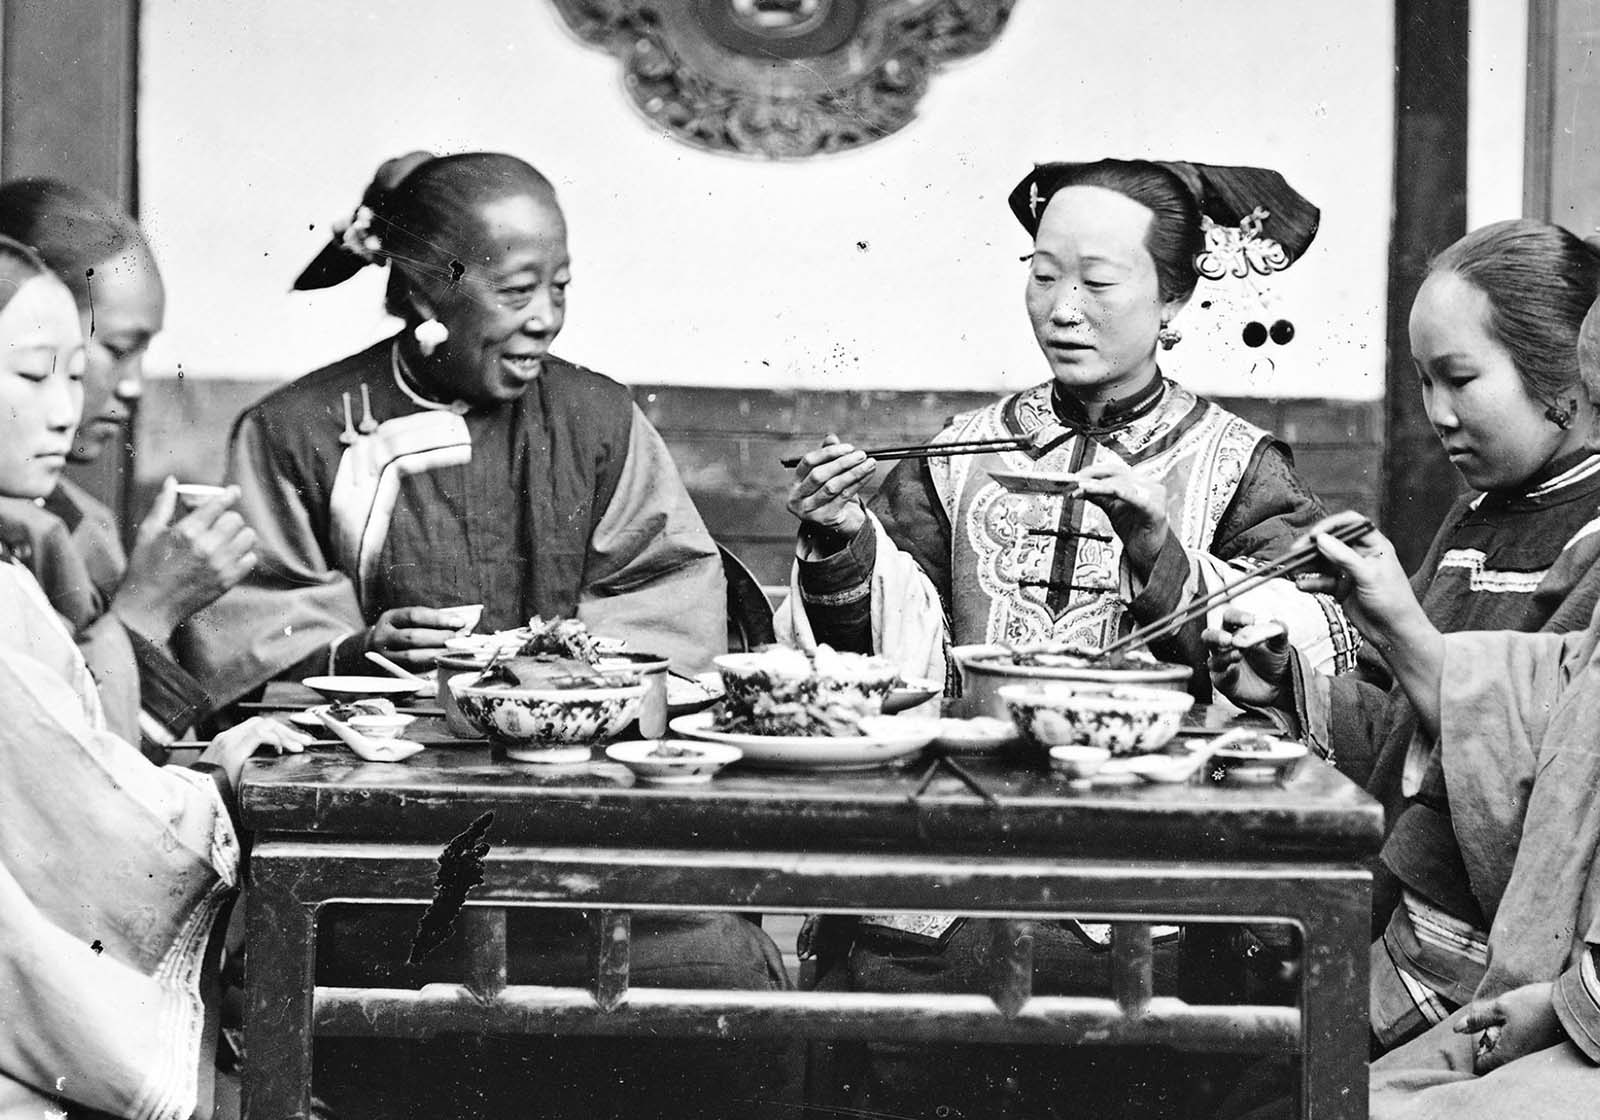 Did China ever have slavery?